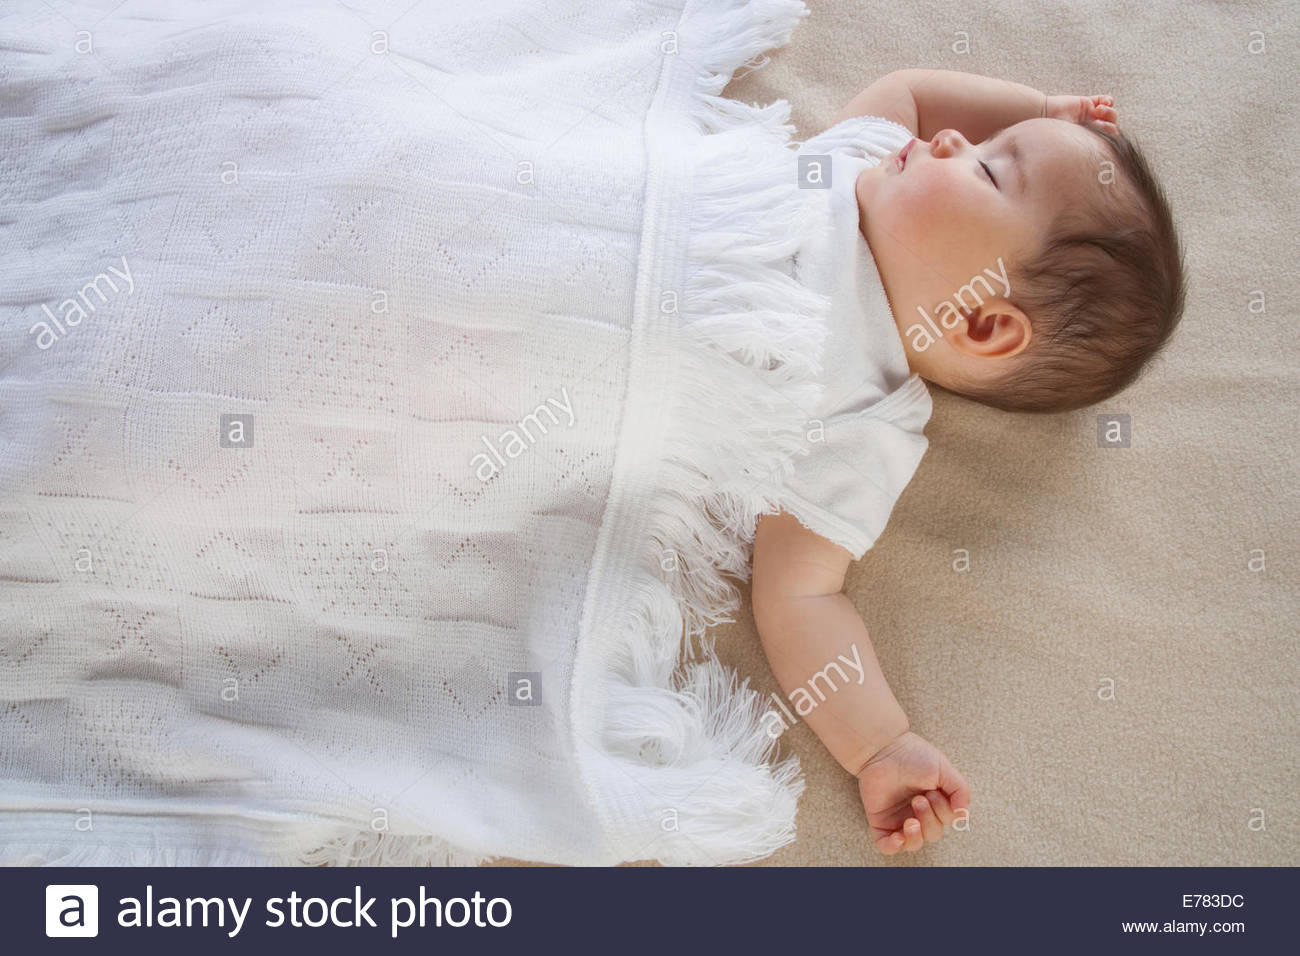 A baby sleeping - Stock Image